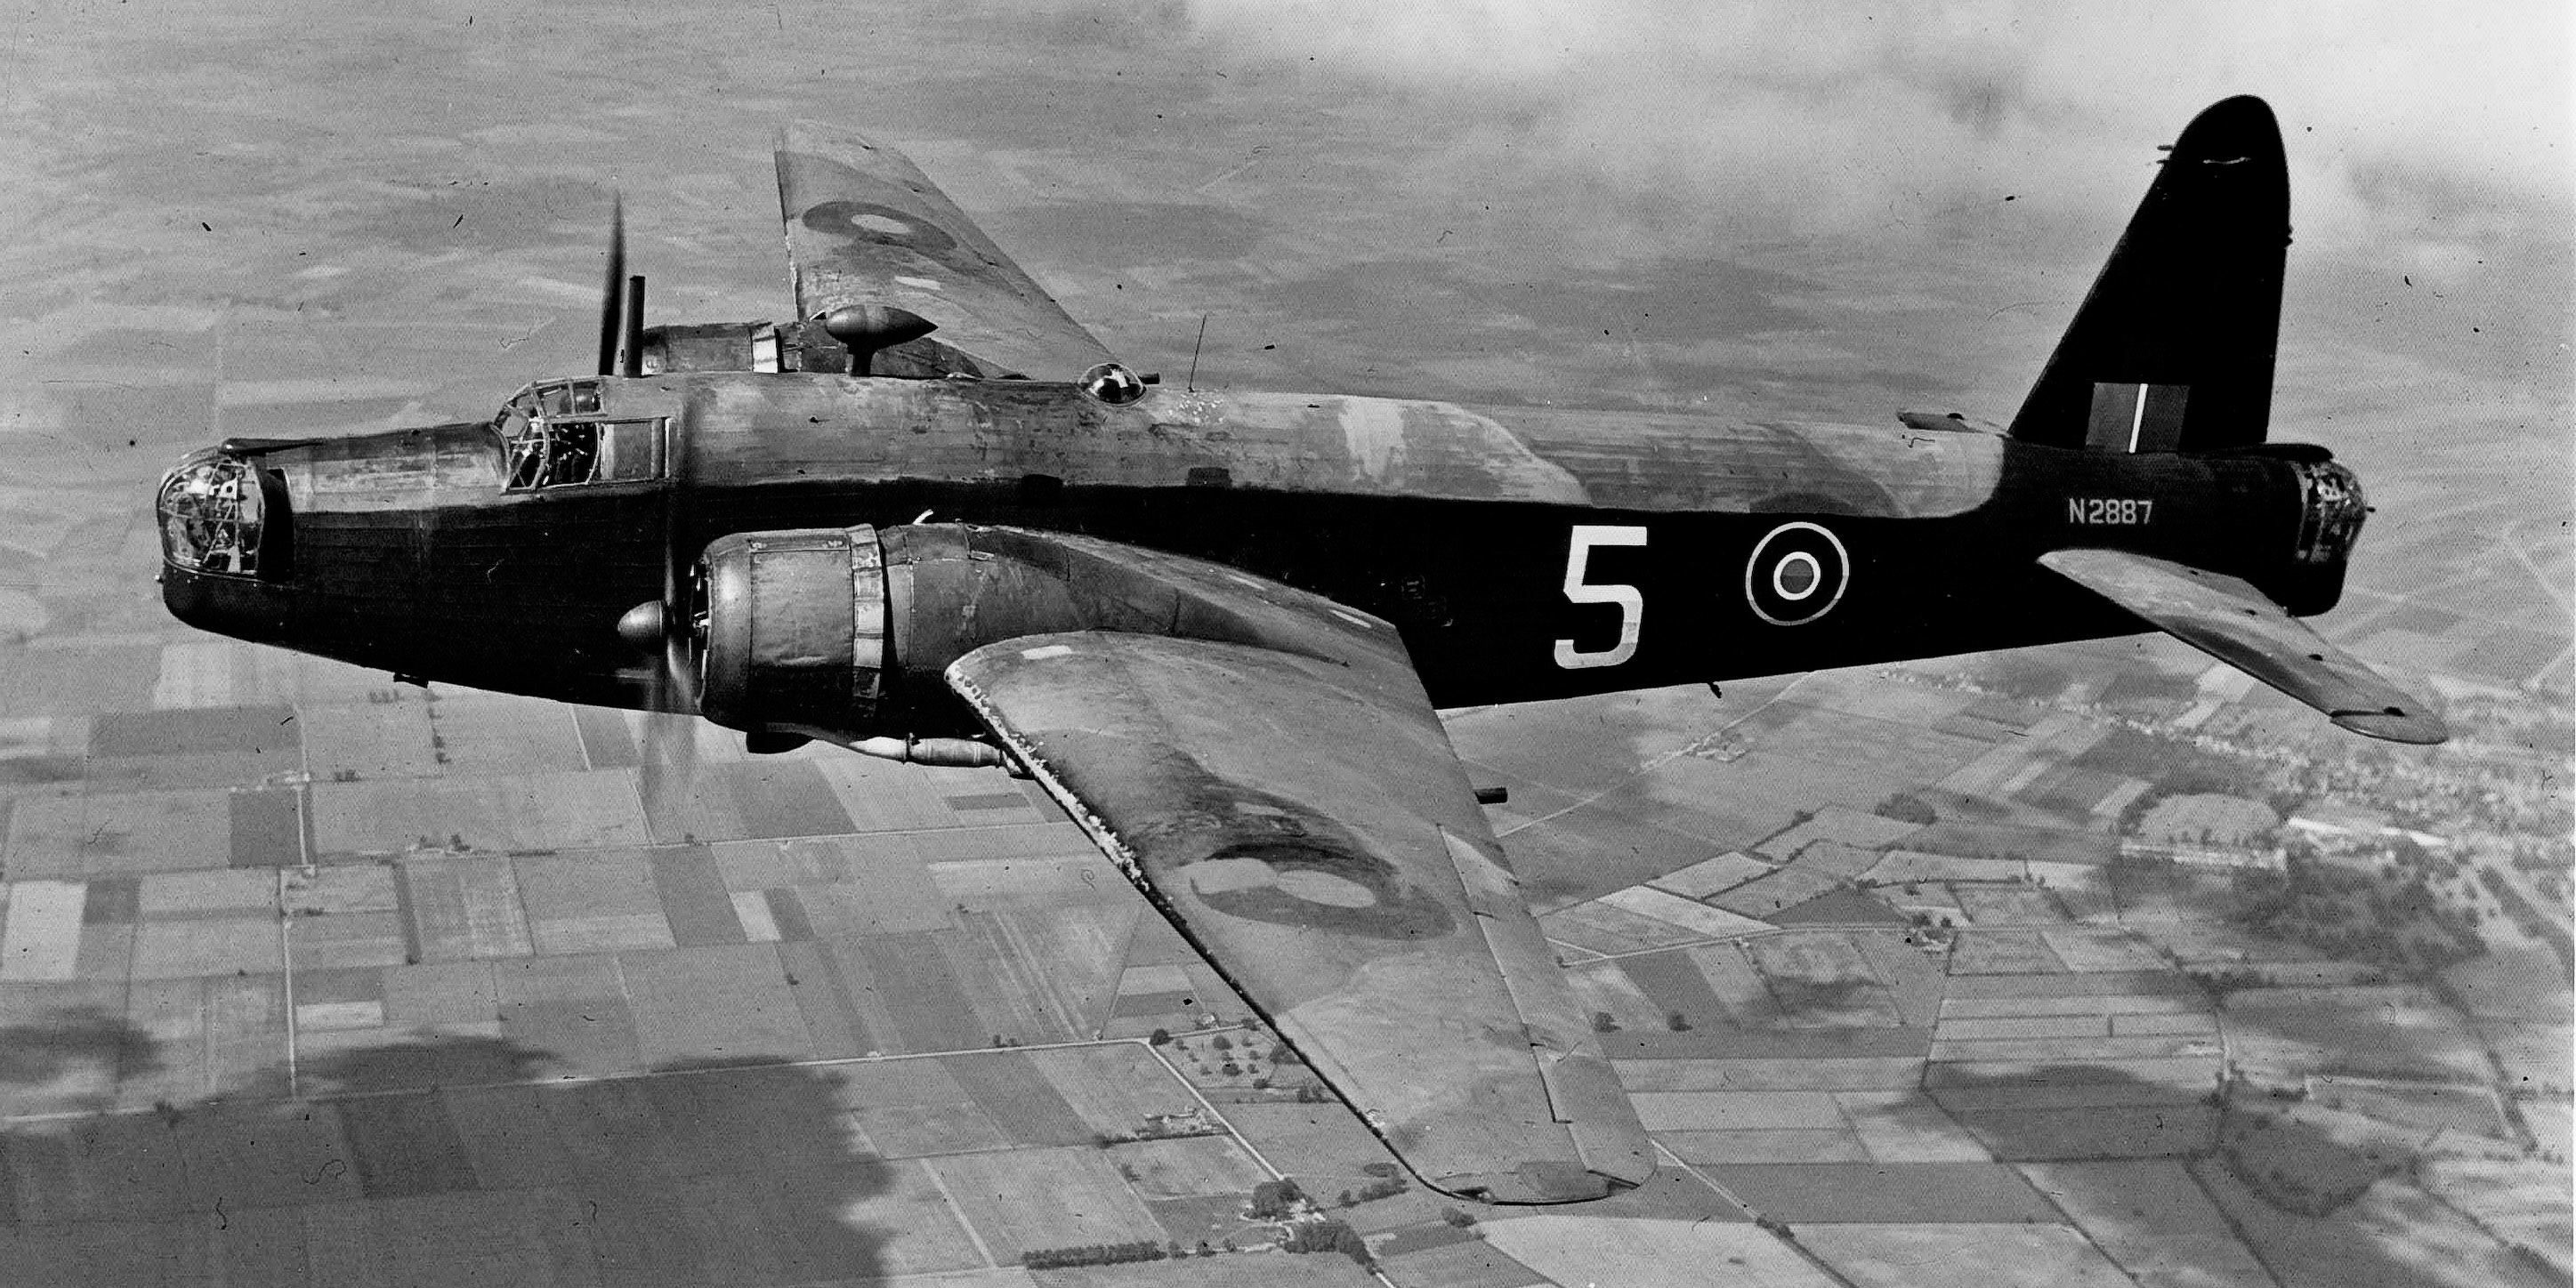 The Vickers Wellington bomber